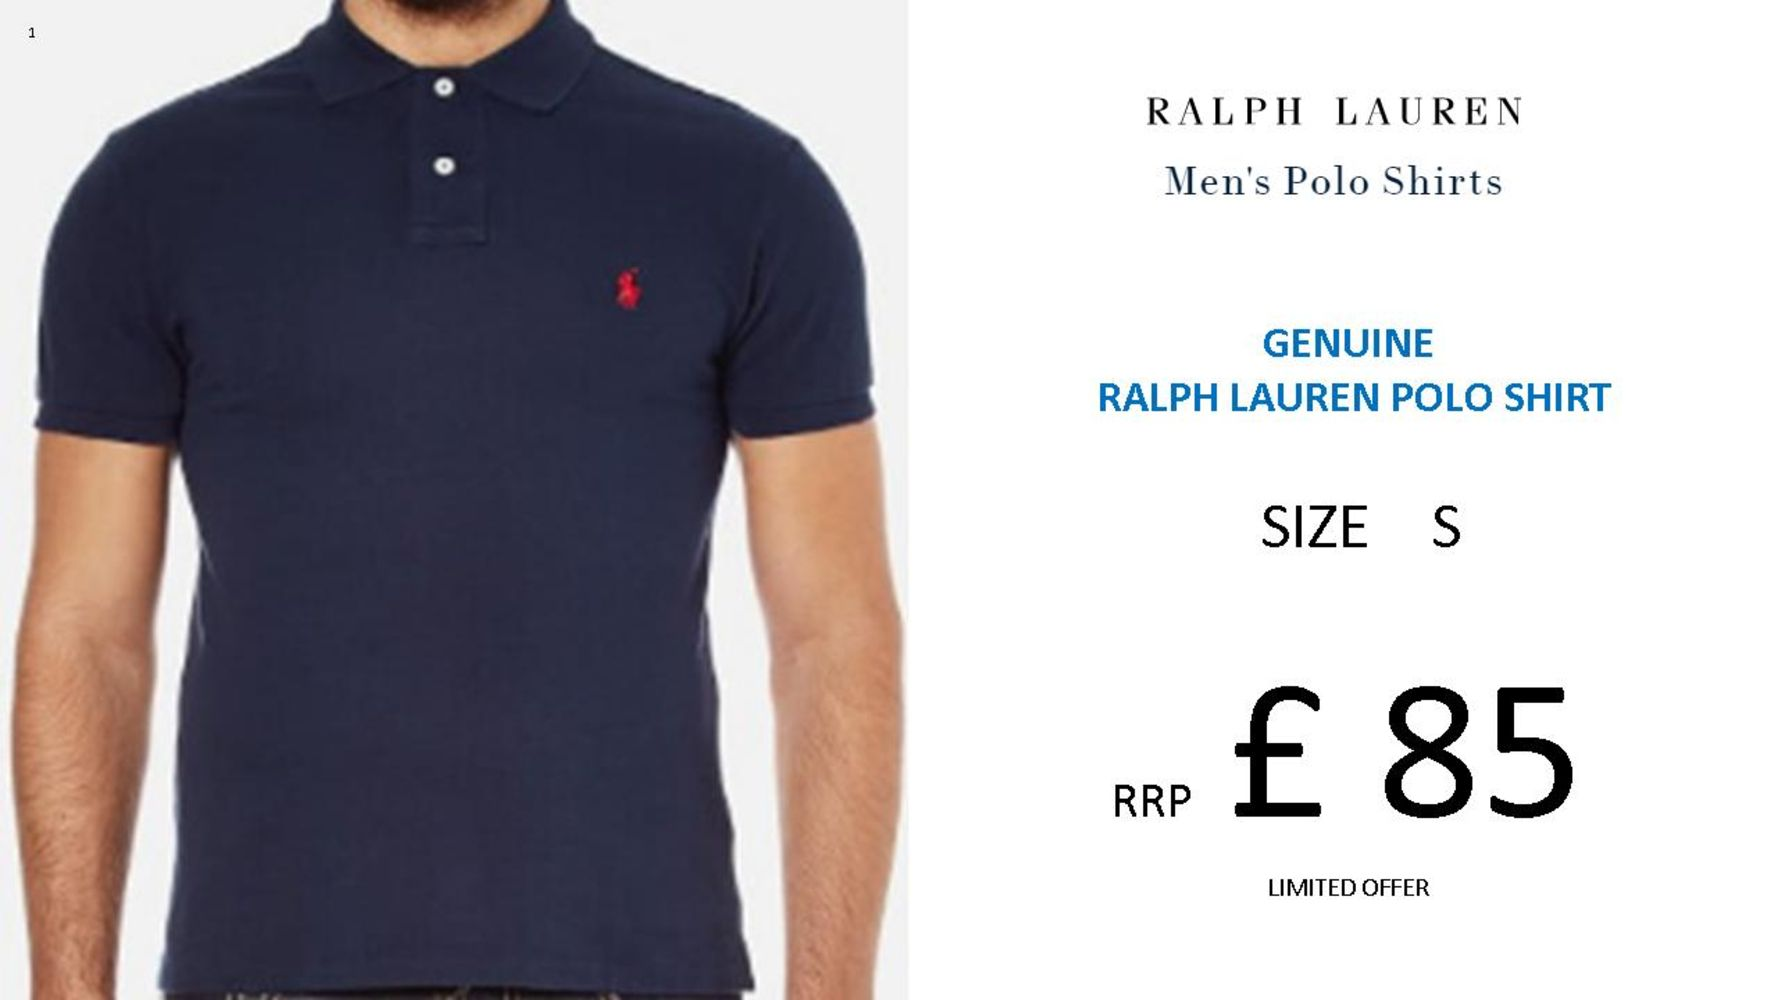 Polo By Ralph Lauren Brand New Iconic Custom Fit Men's Polo Shirts in a Range of Sizes & Colours - Summer Style, Sorted